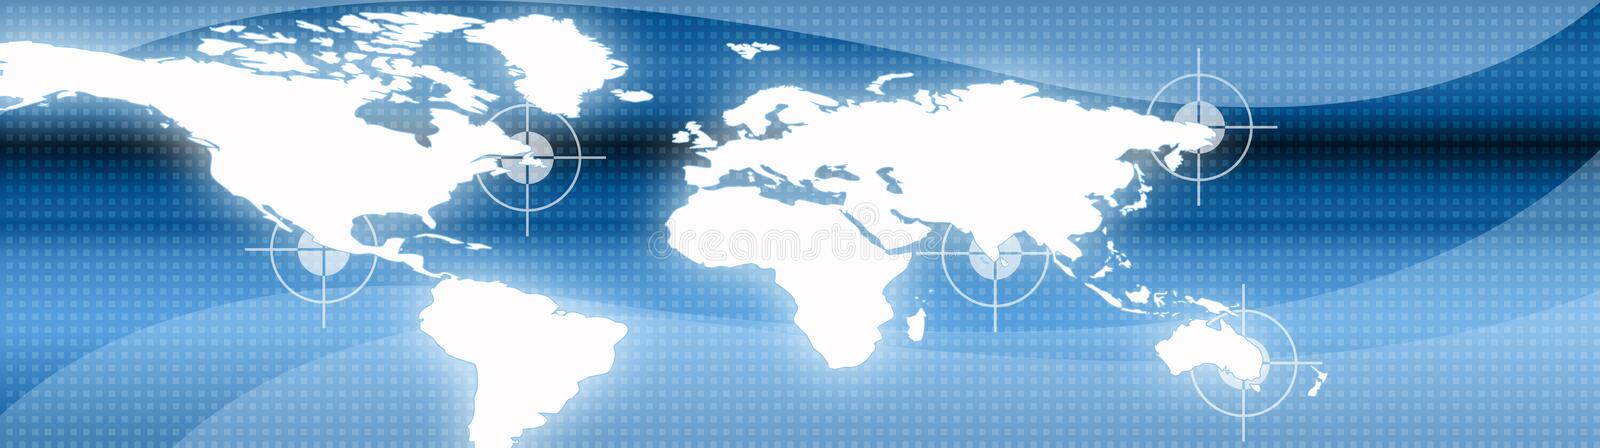 Business and Travel Web header royalty free illustration